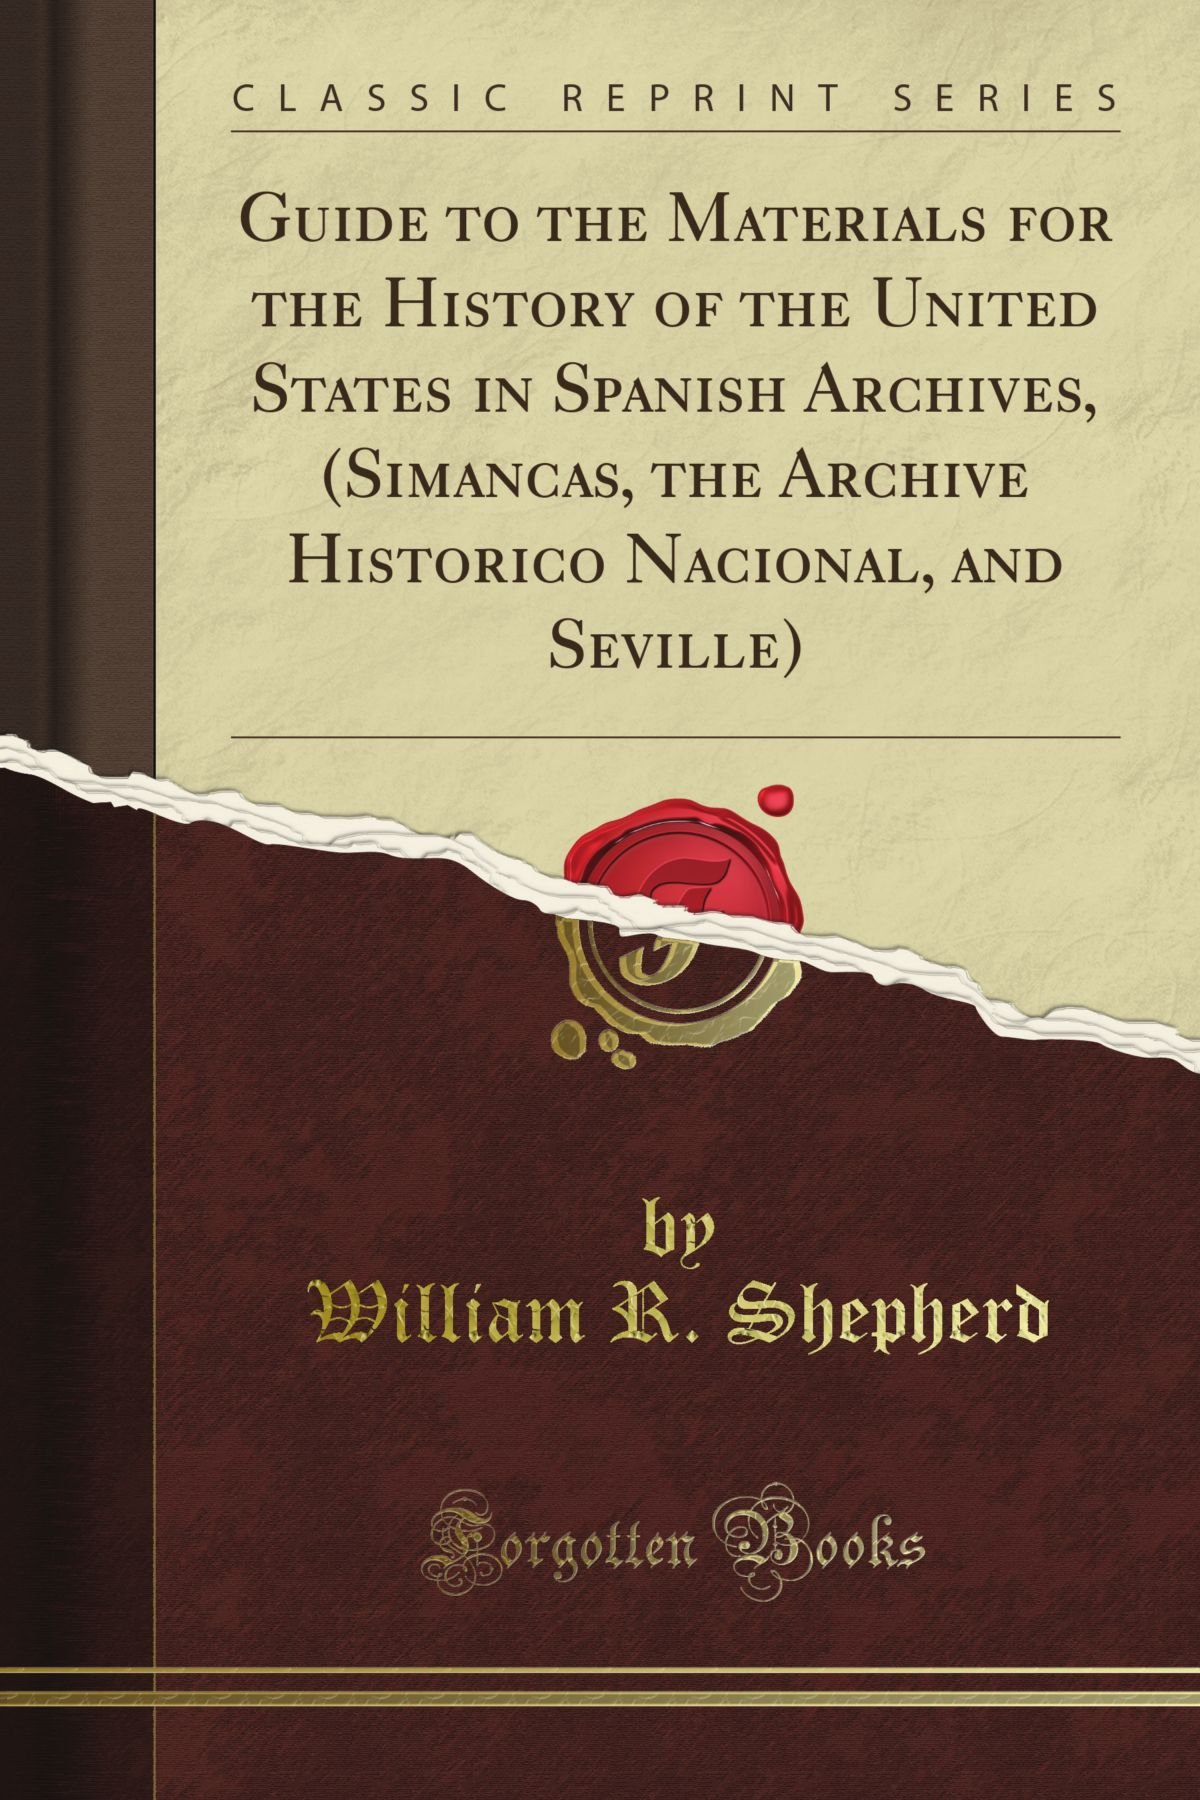 Download Guide to the Materials for the History of the United States in Spanish Archives, (Simancas, the Archive Historico Nacional, and Seville) (Classic Reprint) pdf